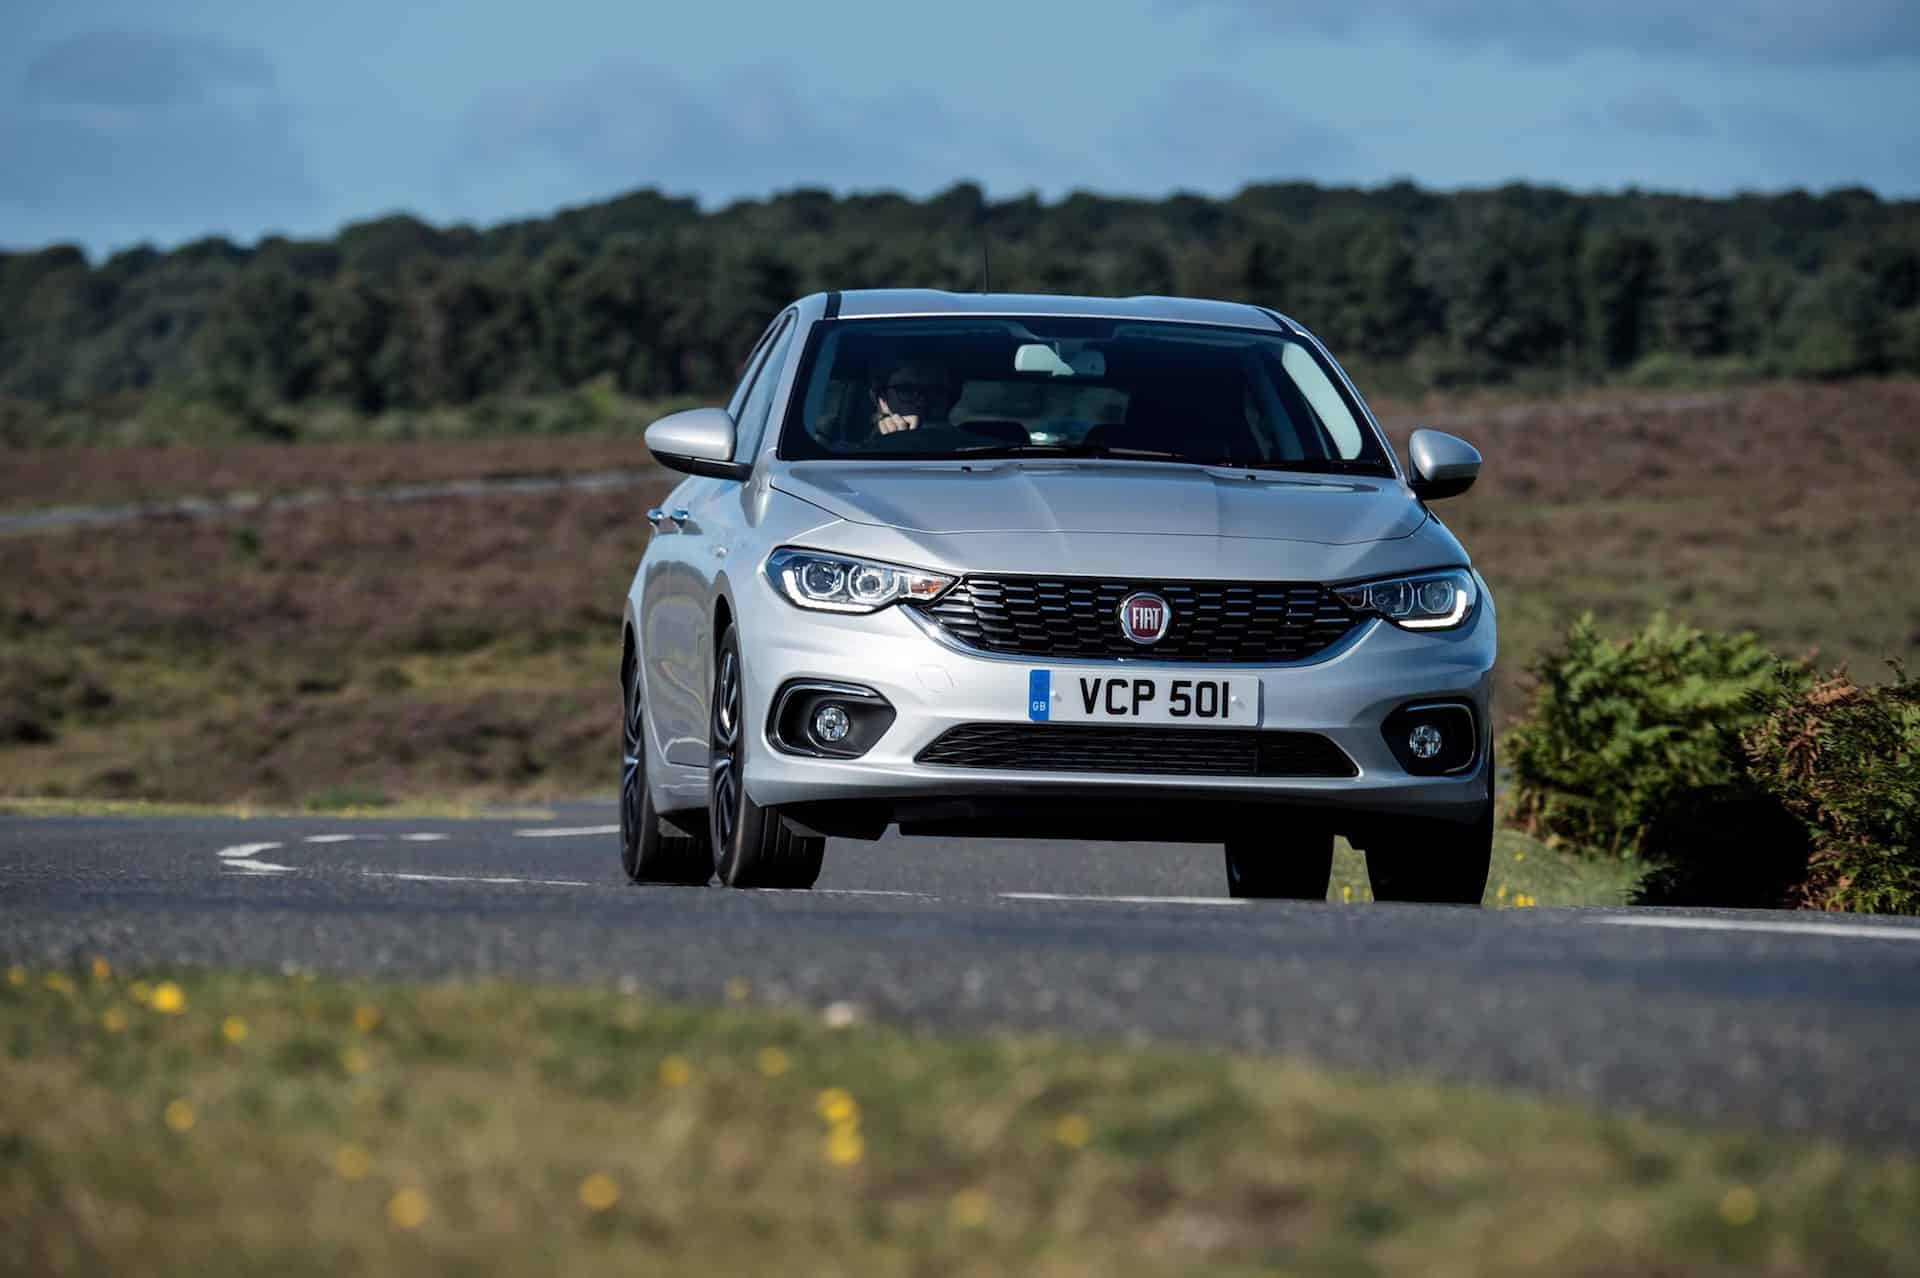 Fiat Tipo road test 2017 | The Car Expert